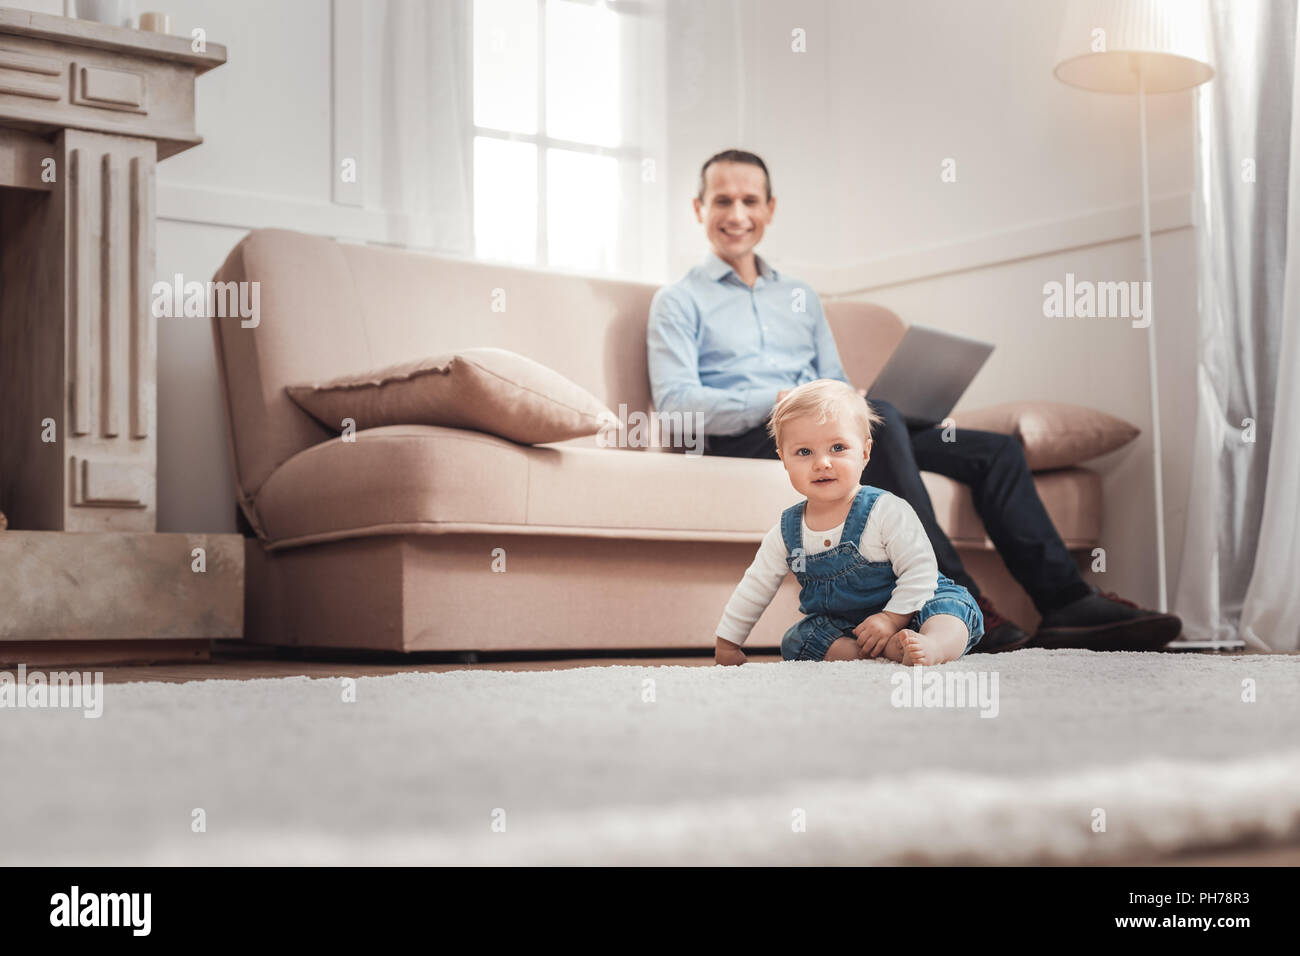 Cheerful happy child smiling - Stock Image